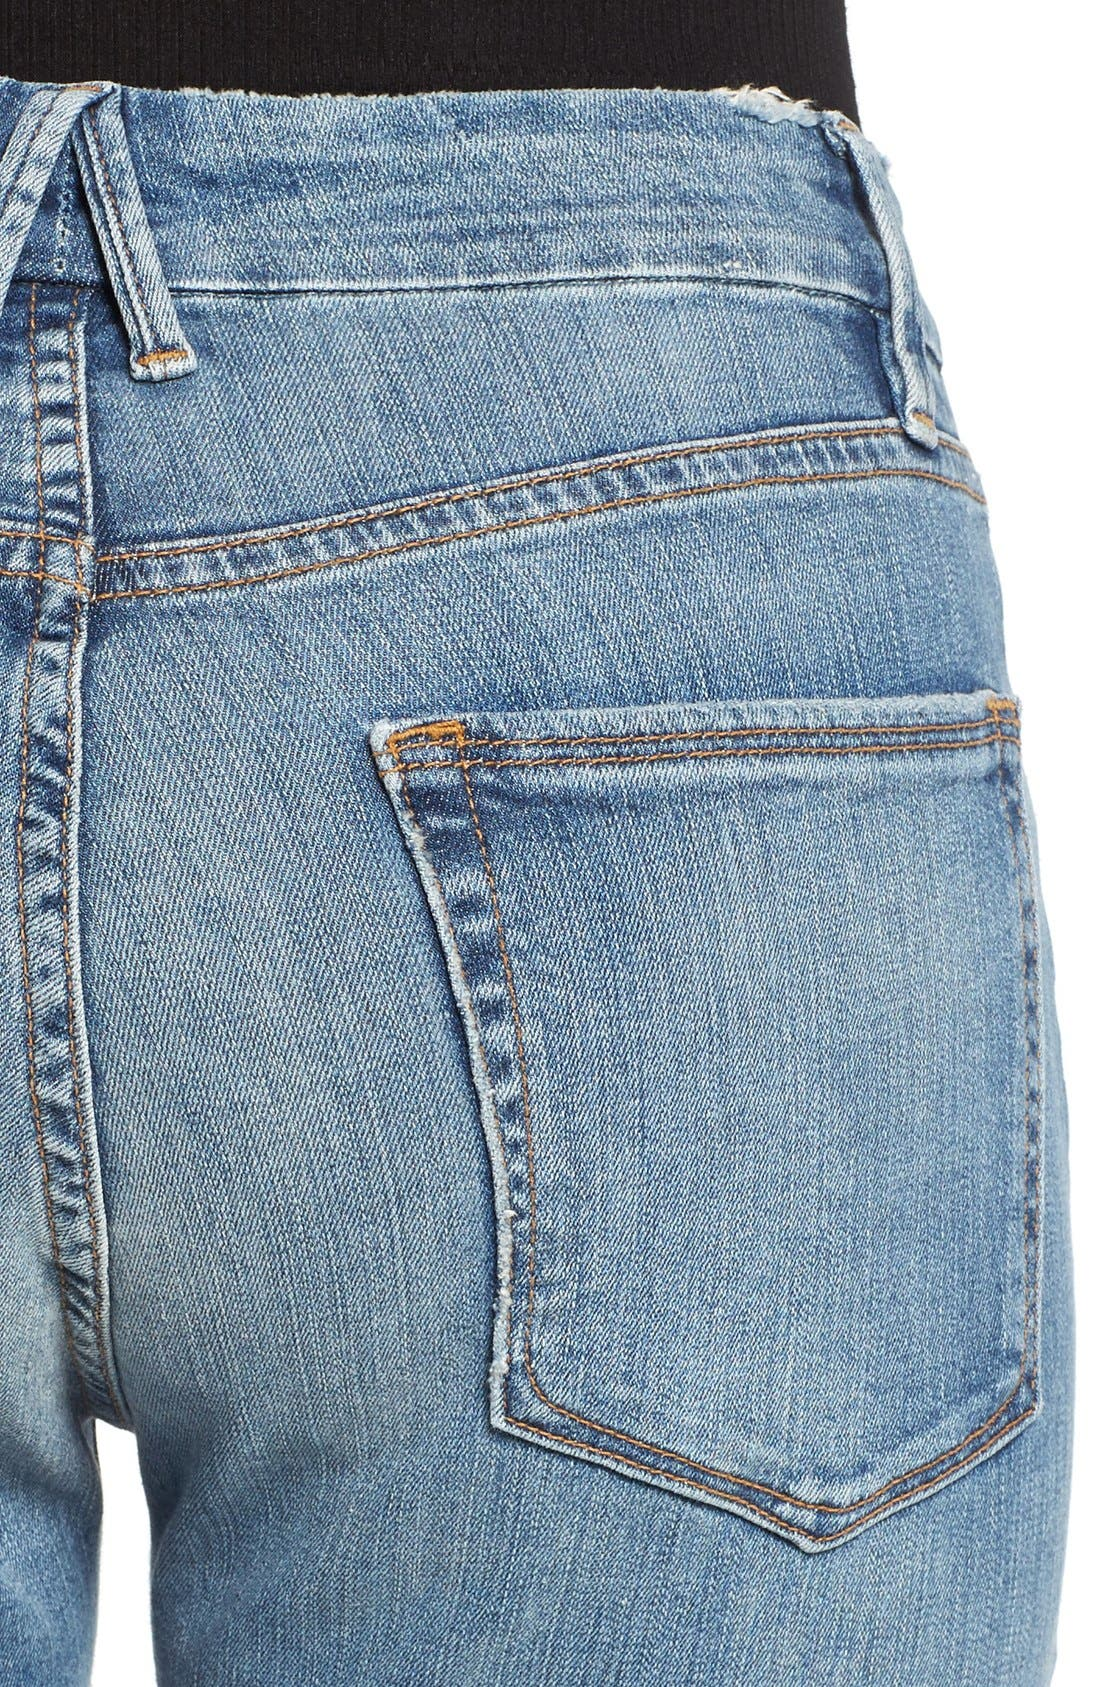 Alternate Image 4  - Good American Good Cuts High Rise Boyfriend Jeans (Blue 012) (Extended Sizes)